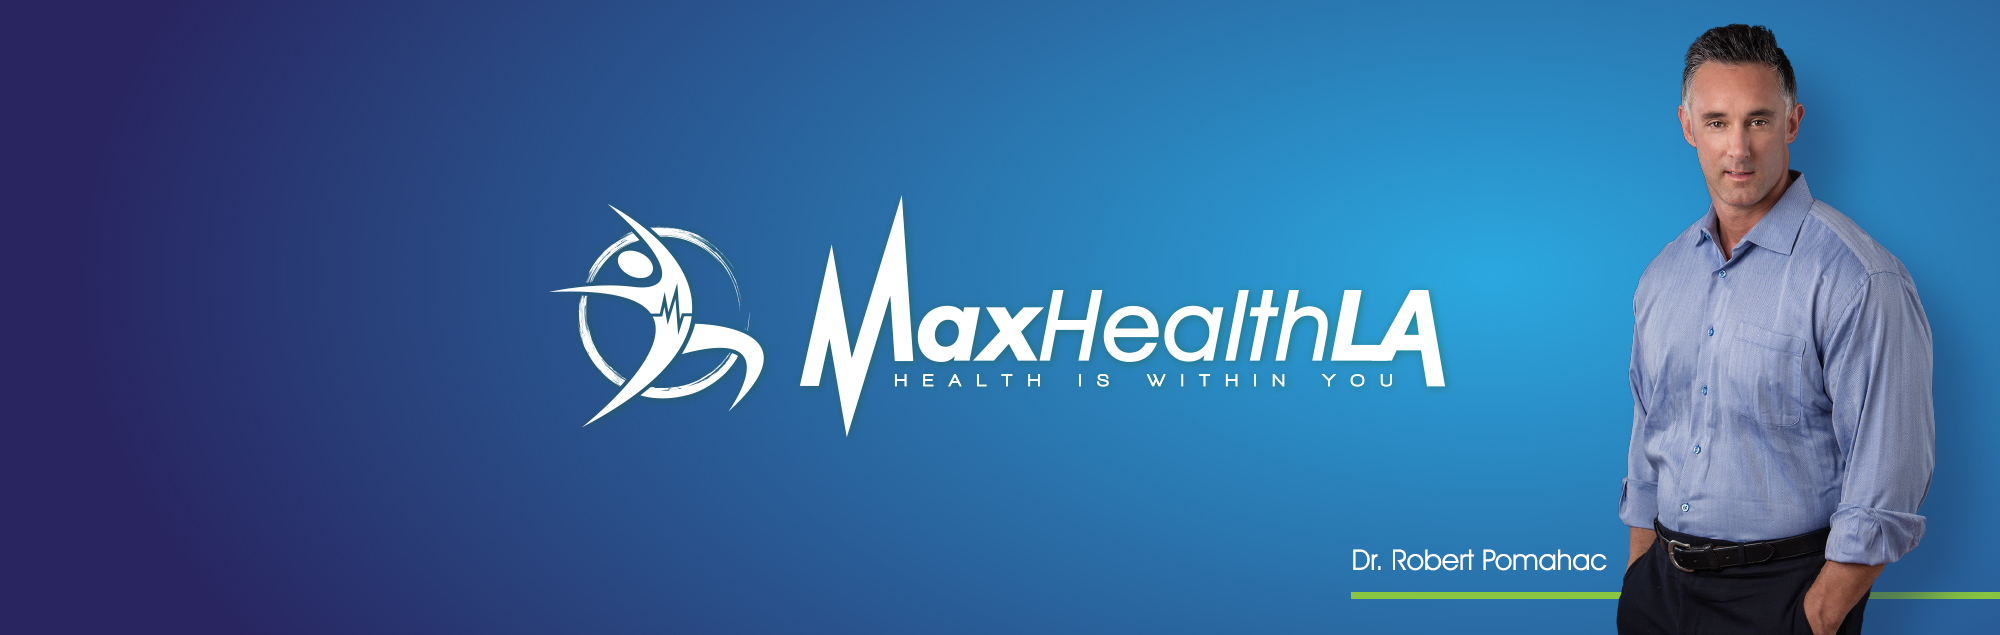 Max Health LA   Medical Centers in 6200 Wilshire Blvd - Los Angeles CA - Reviews - Photos - Phone Number